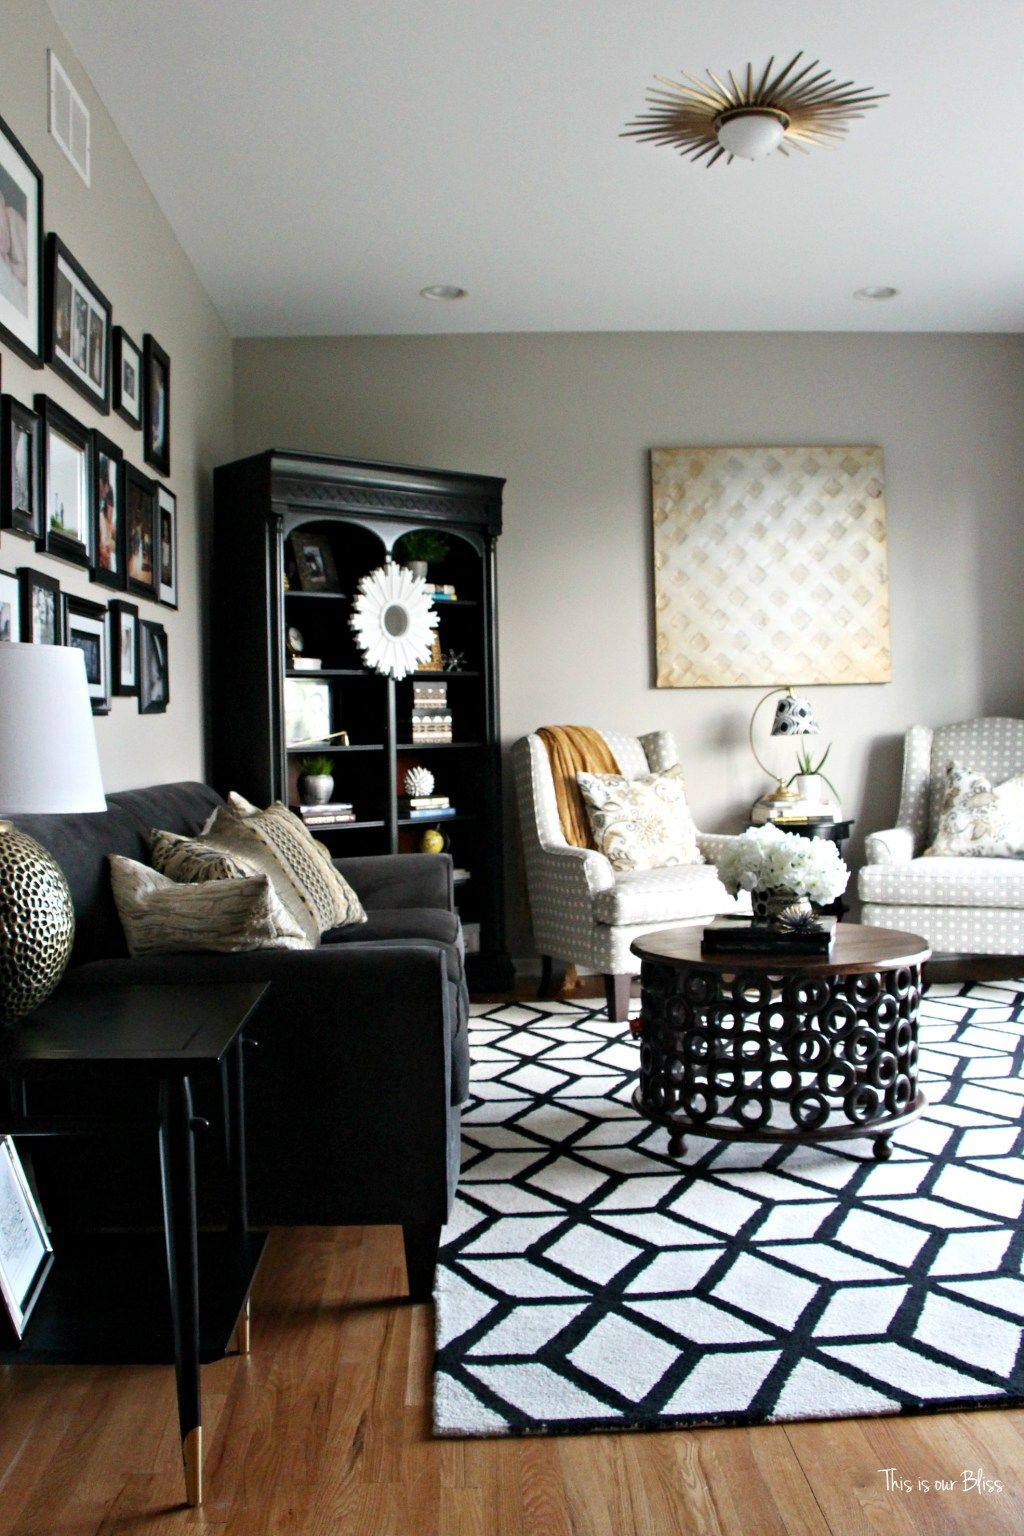 Where to buy bold black and white rugs | Rugs | Black, white living ...